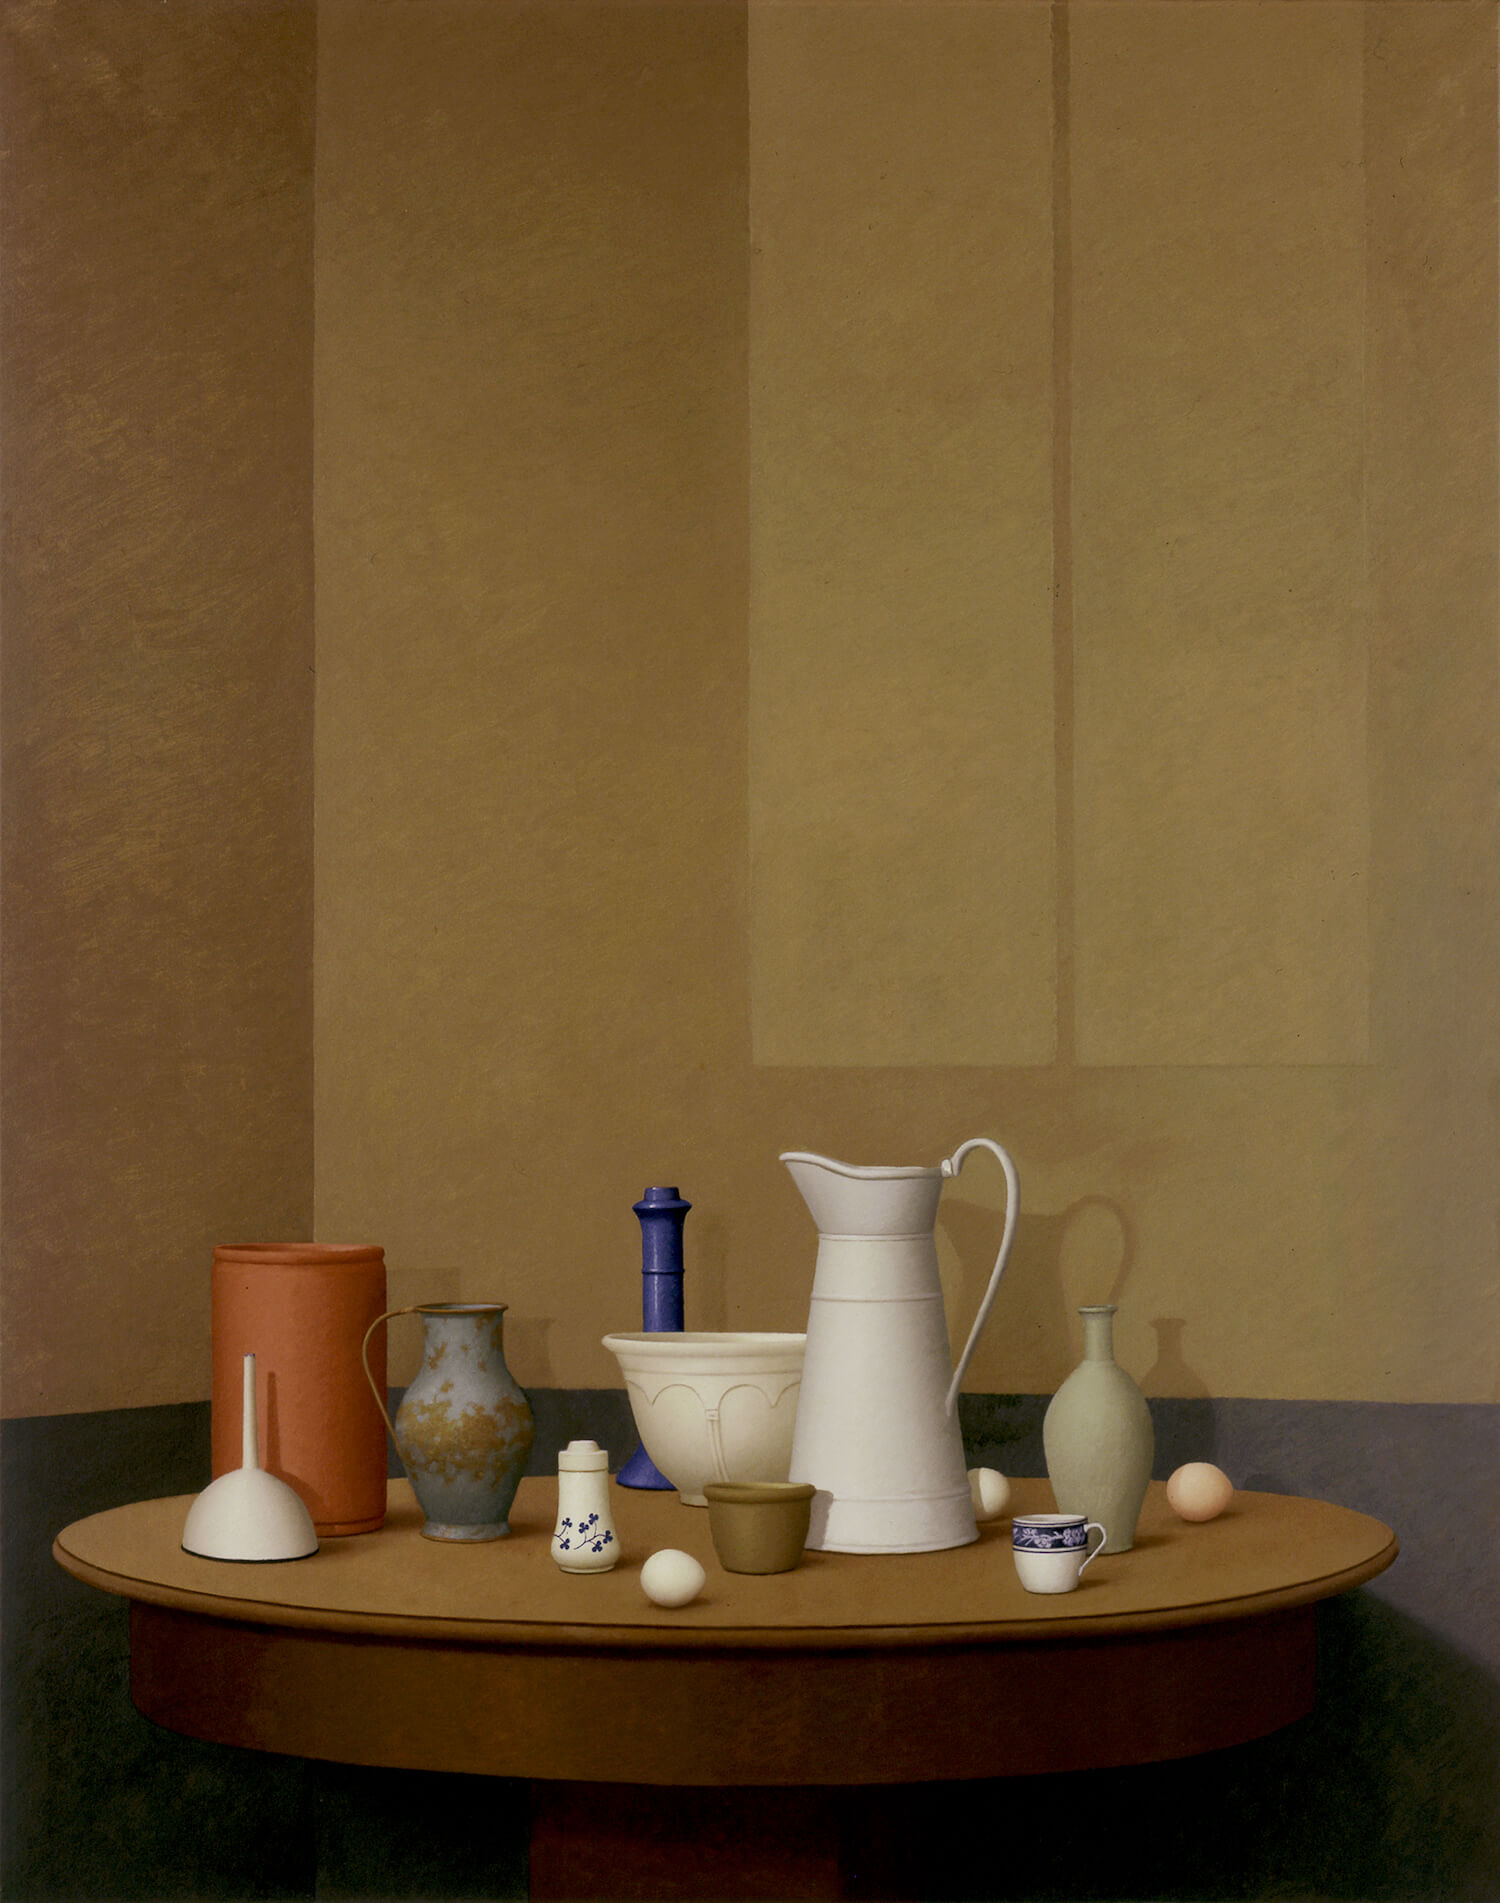 How To Recall An Email >> Object Permanence: William Bailey at the Century Club   Painters' Table